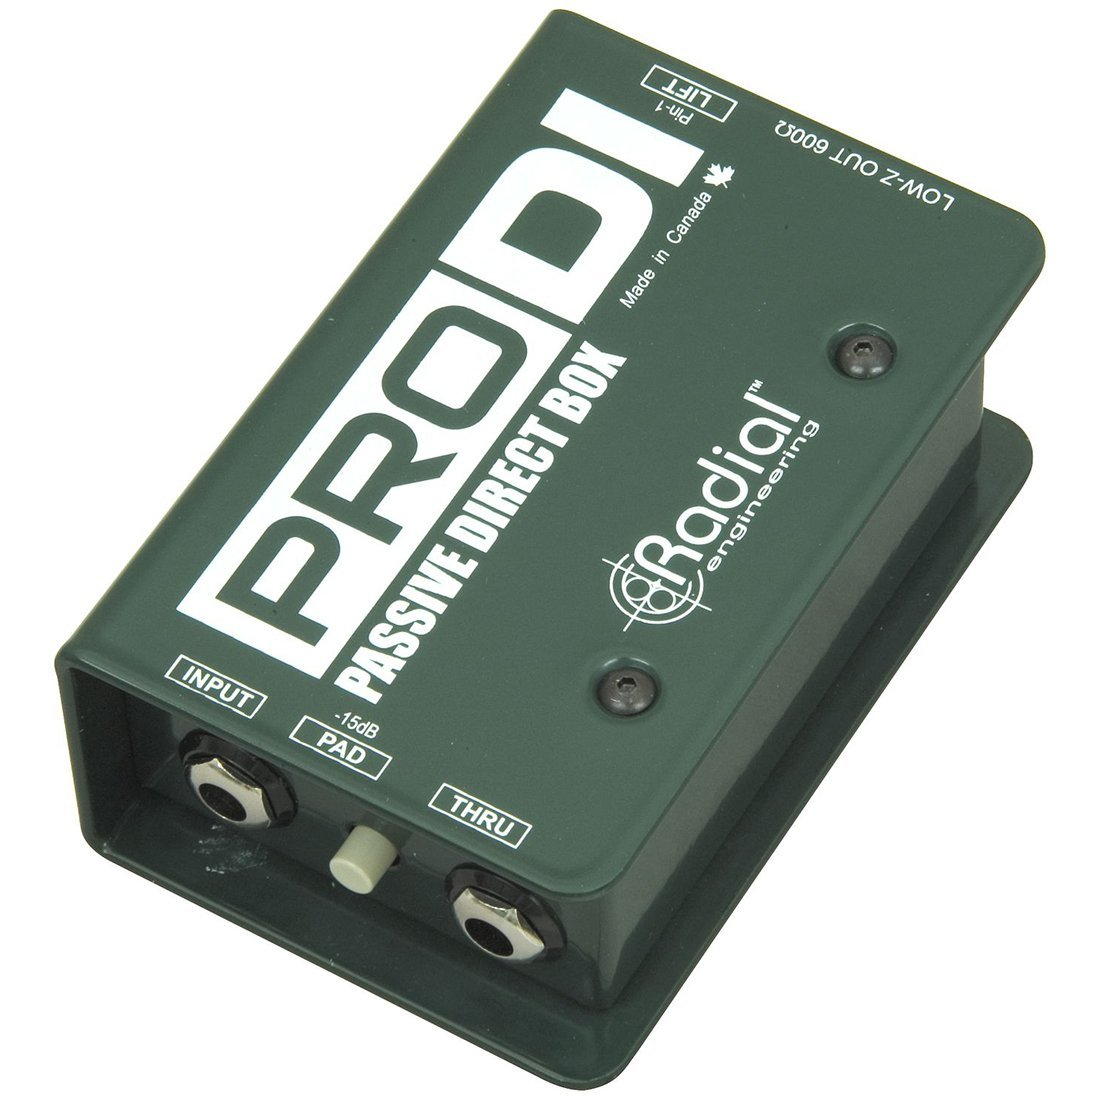 RADIAL Pro D.I. direct box